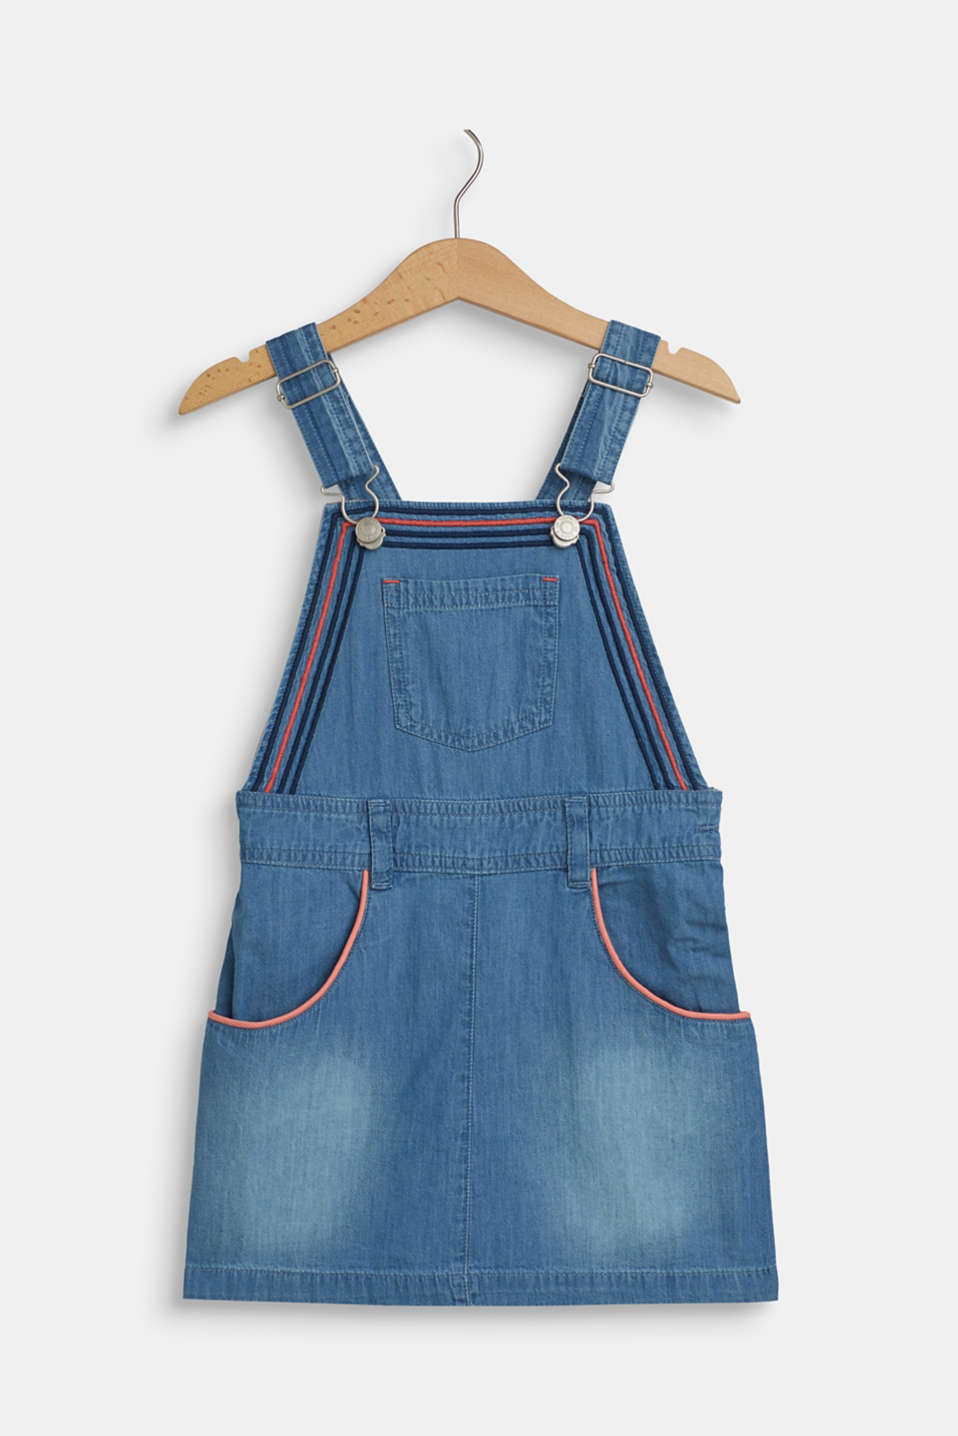 Esprit - Dungaree dress made of lightweight cotton denim